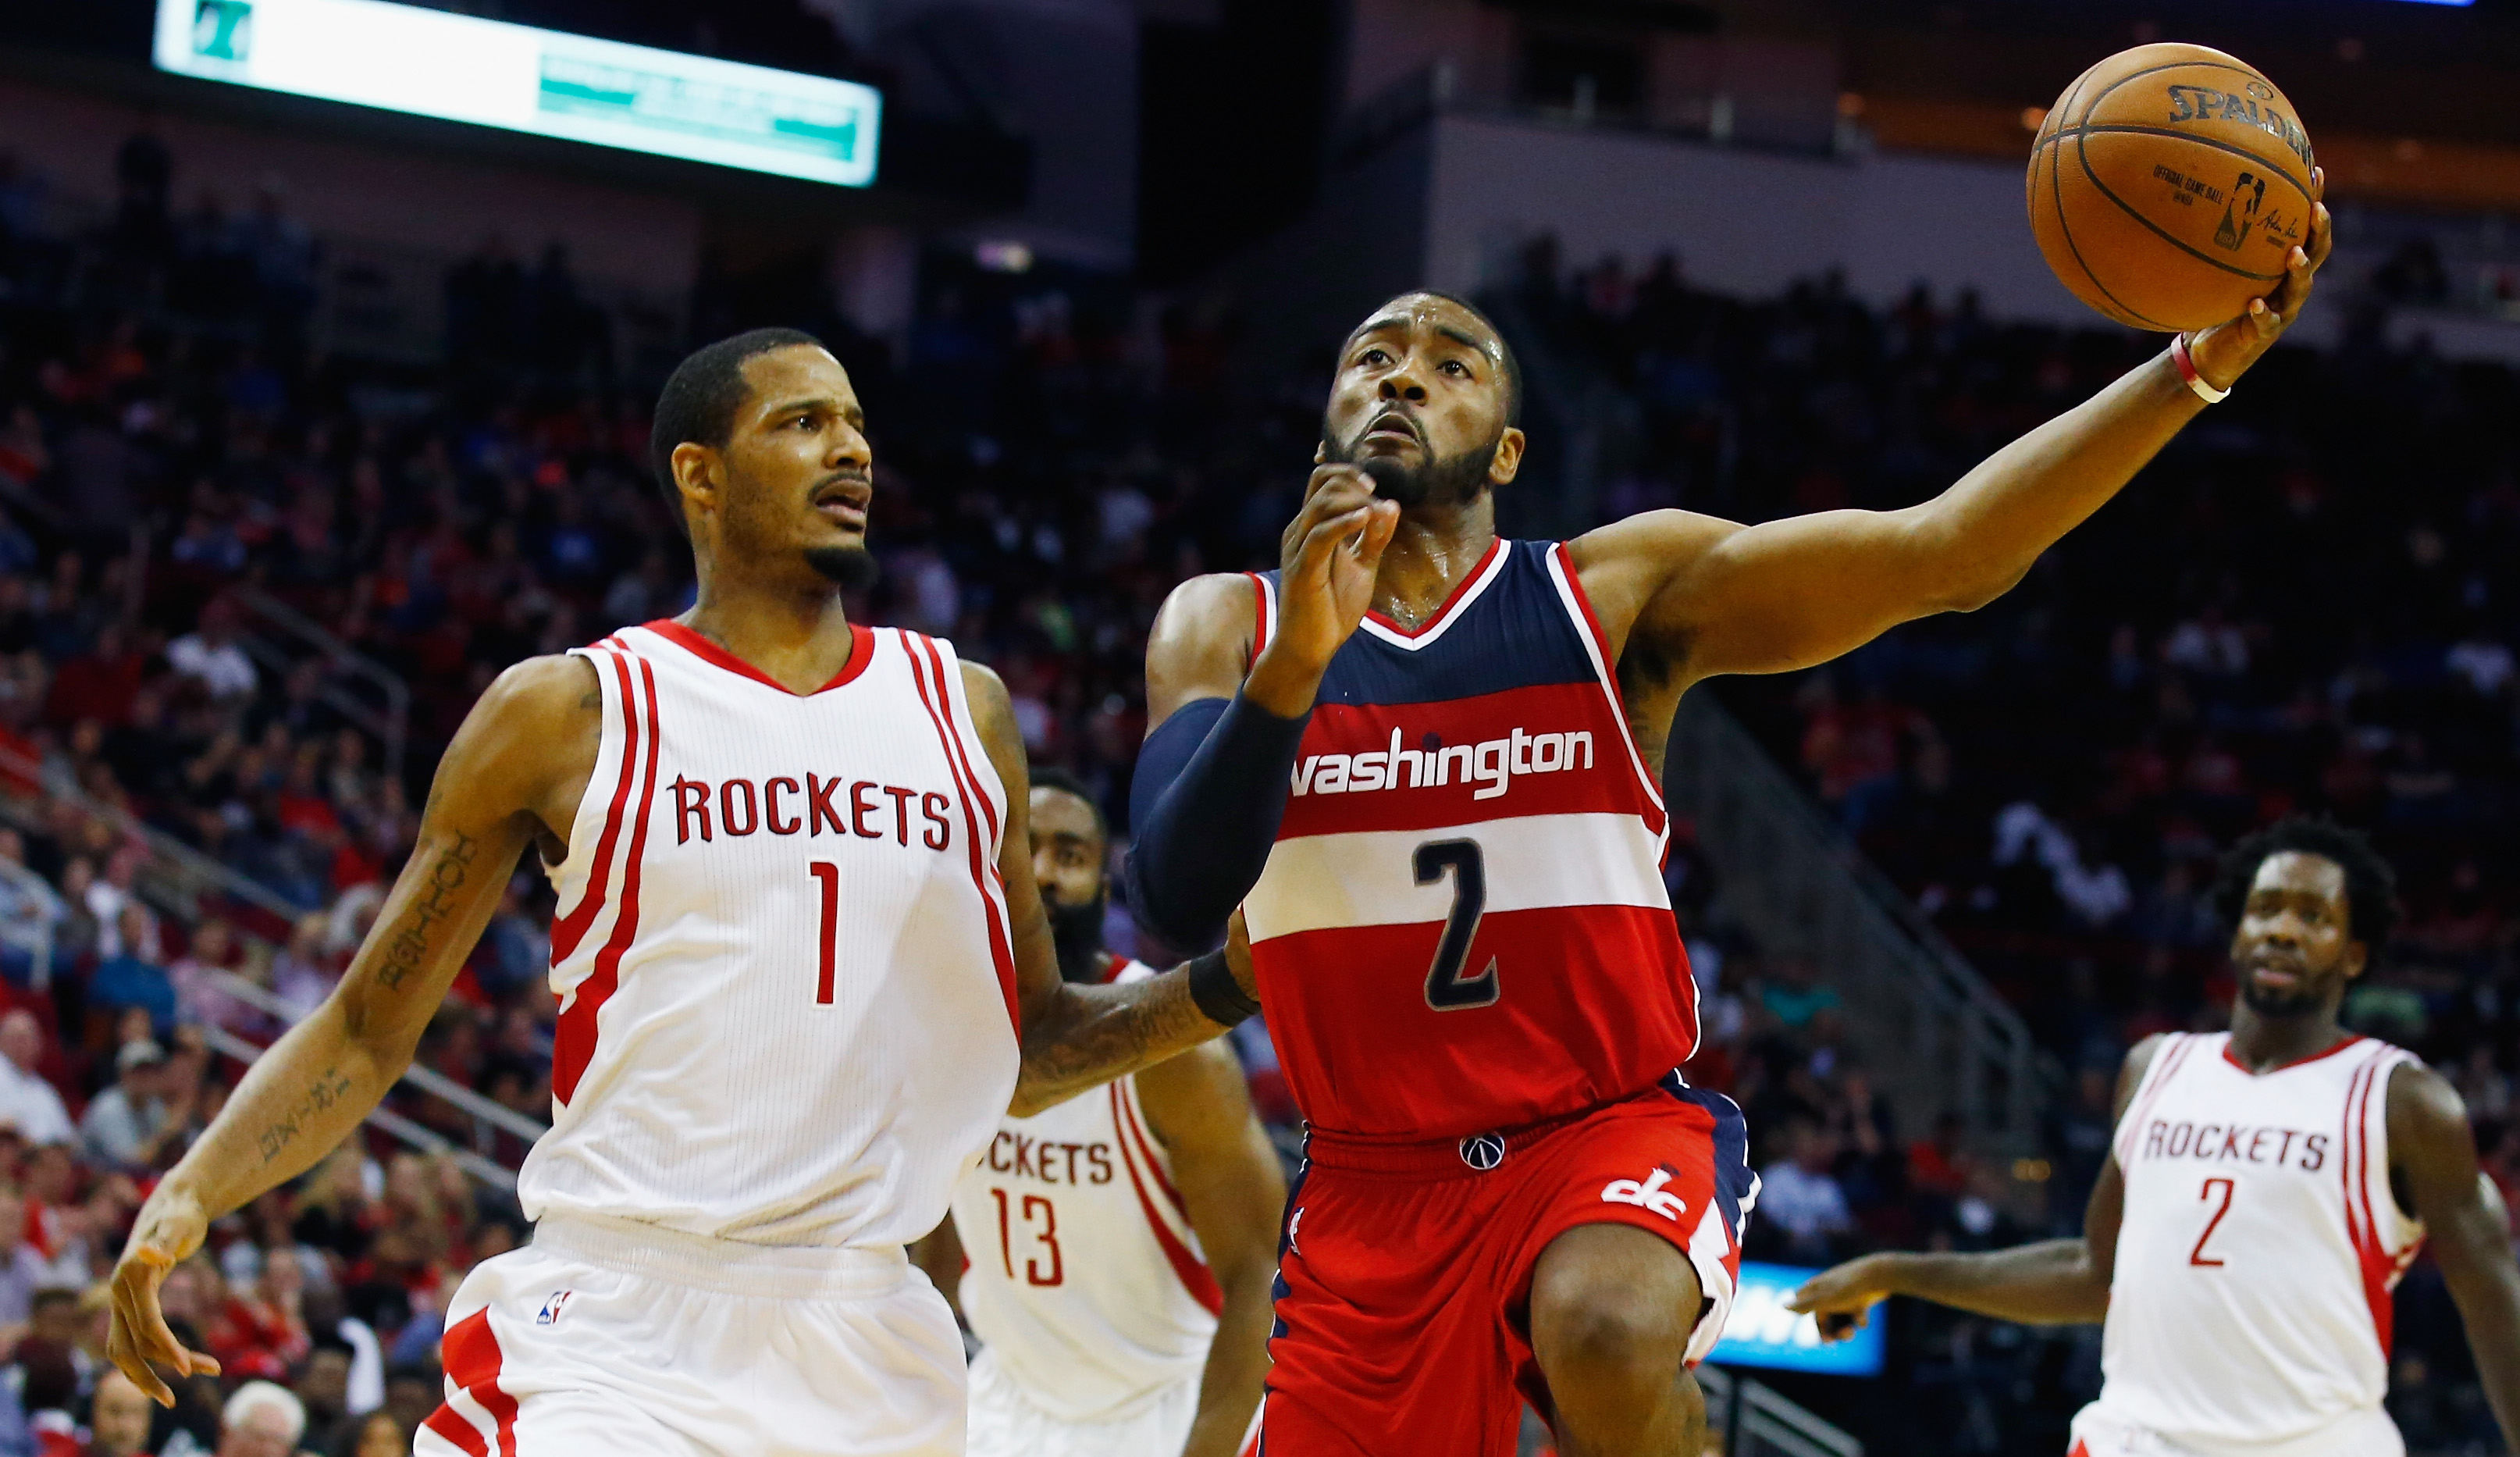 HOUSTON, TX - JANUARY 30:  John Wall #2 of the Washington Wizards drives with the basketball against Trevor Ariza #1 of the Houston Rockets during their game at the Toyota Center on January 30, 2016  in Houston, Texas. (Photo by Scott Halleran/Getty Image